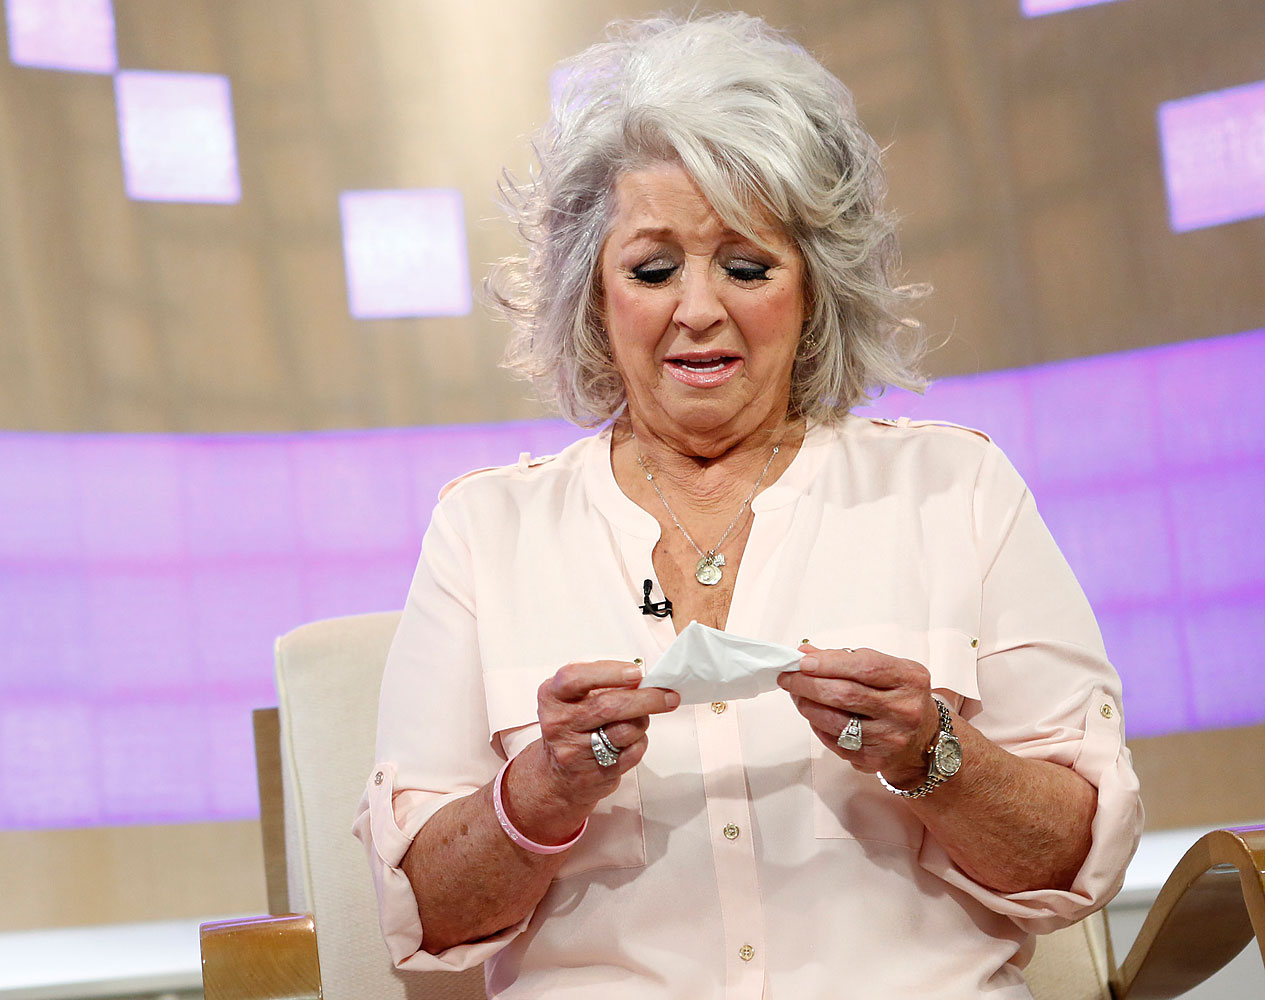 Celebrity chef Paula Deen cries on NBC News'  Today  show in New York days after she issued two videotaped apologies on YouTube seeking forgiveness following her admission that she used a racial slur in the past, June 26, 2013.